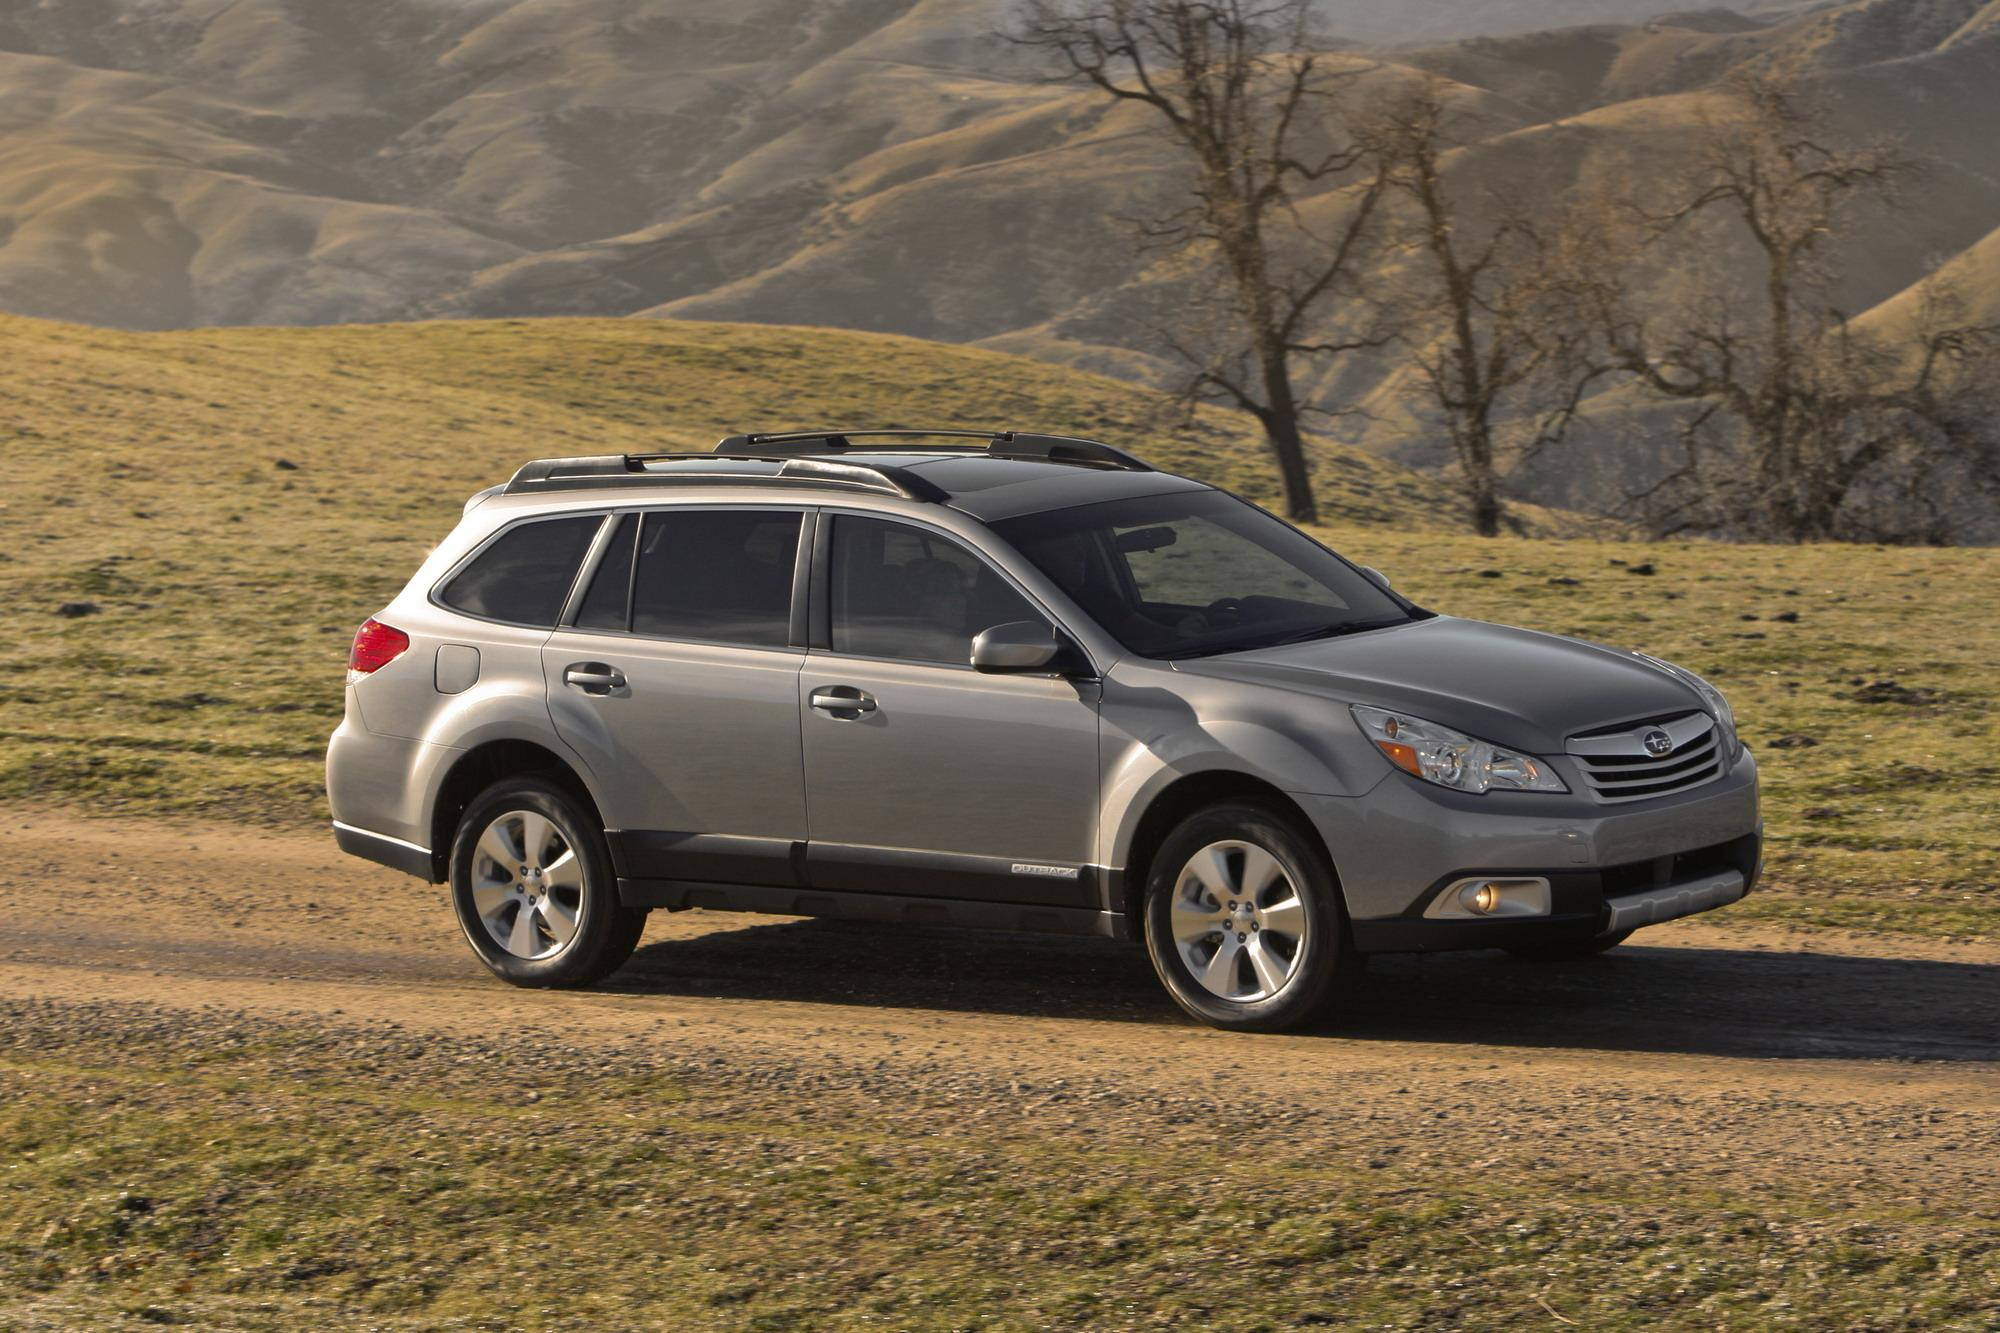 2010 subaru outback pricing announced news gallery top speed. Black Bedroom Furniture Sets. Home Design Ideas